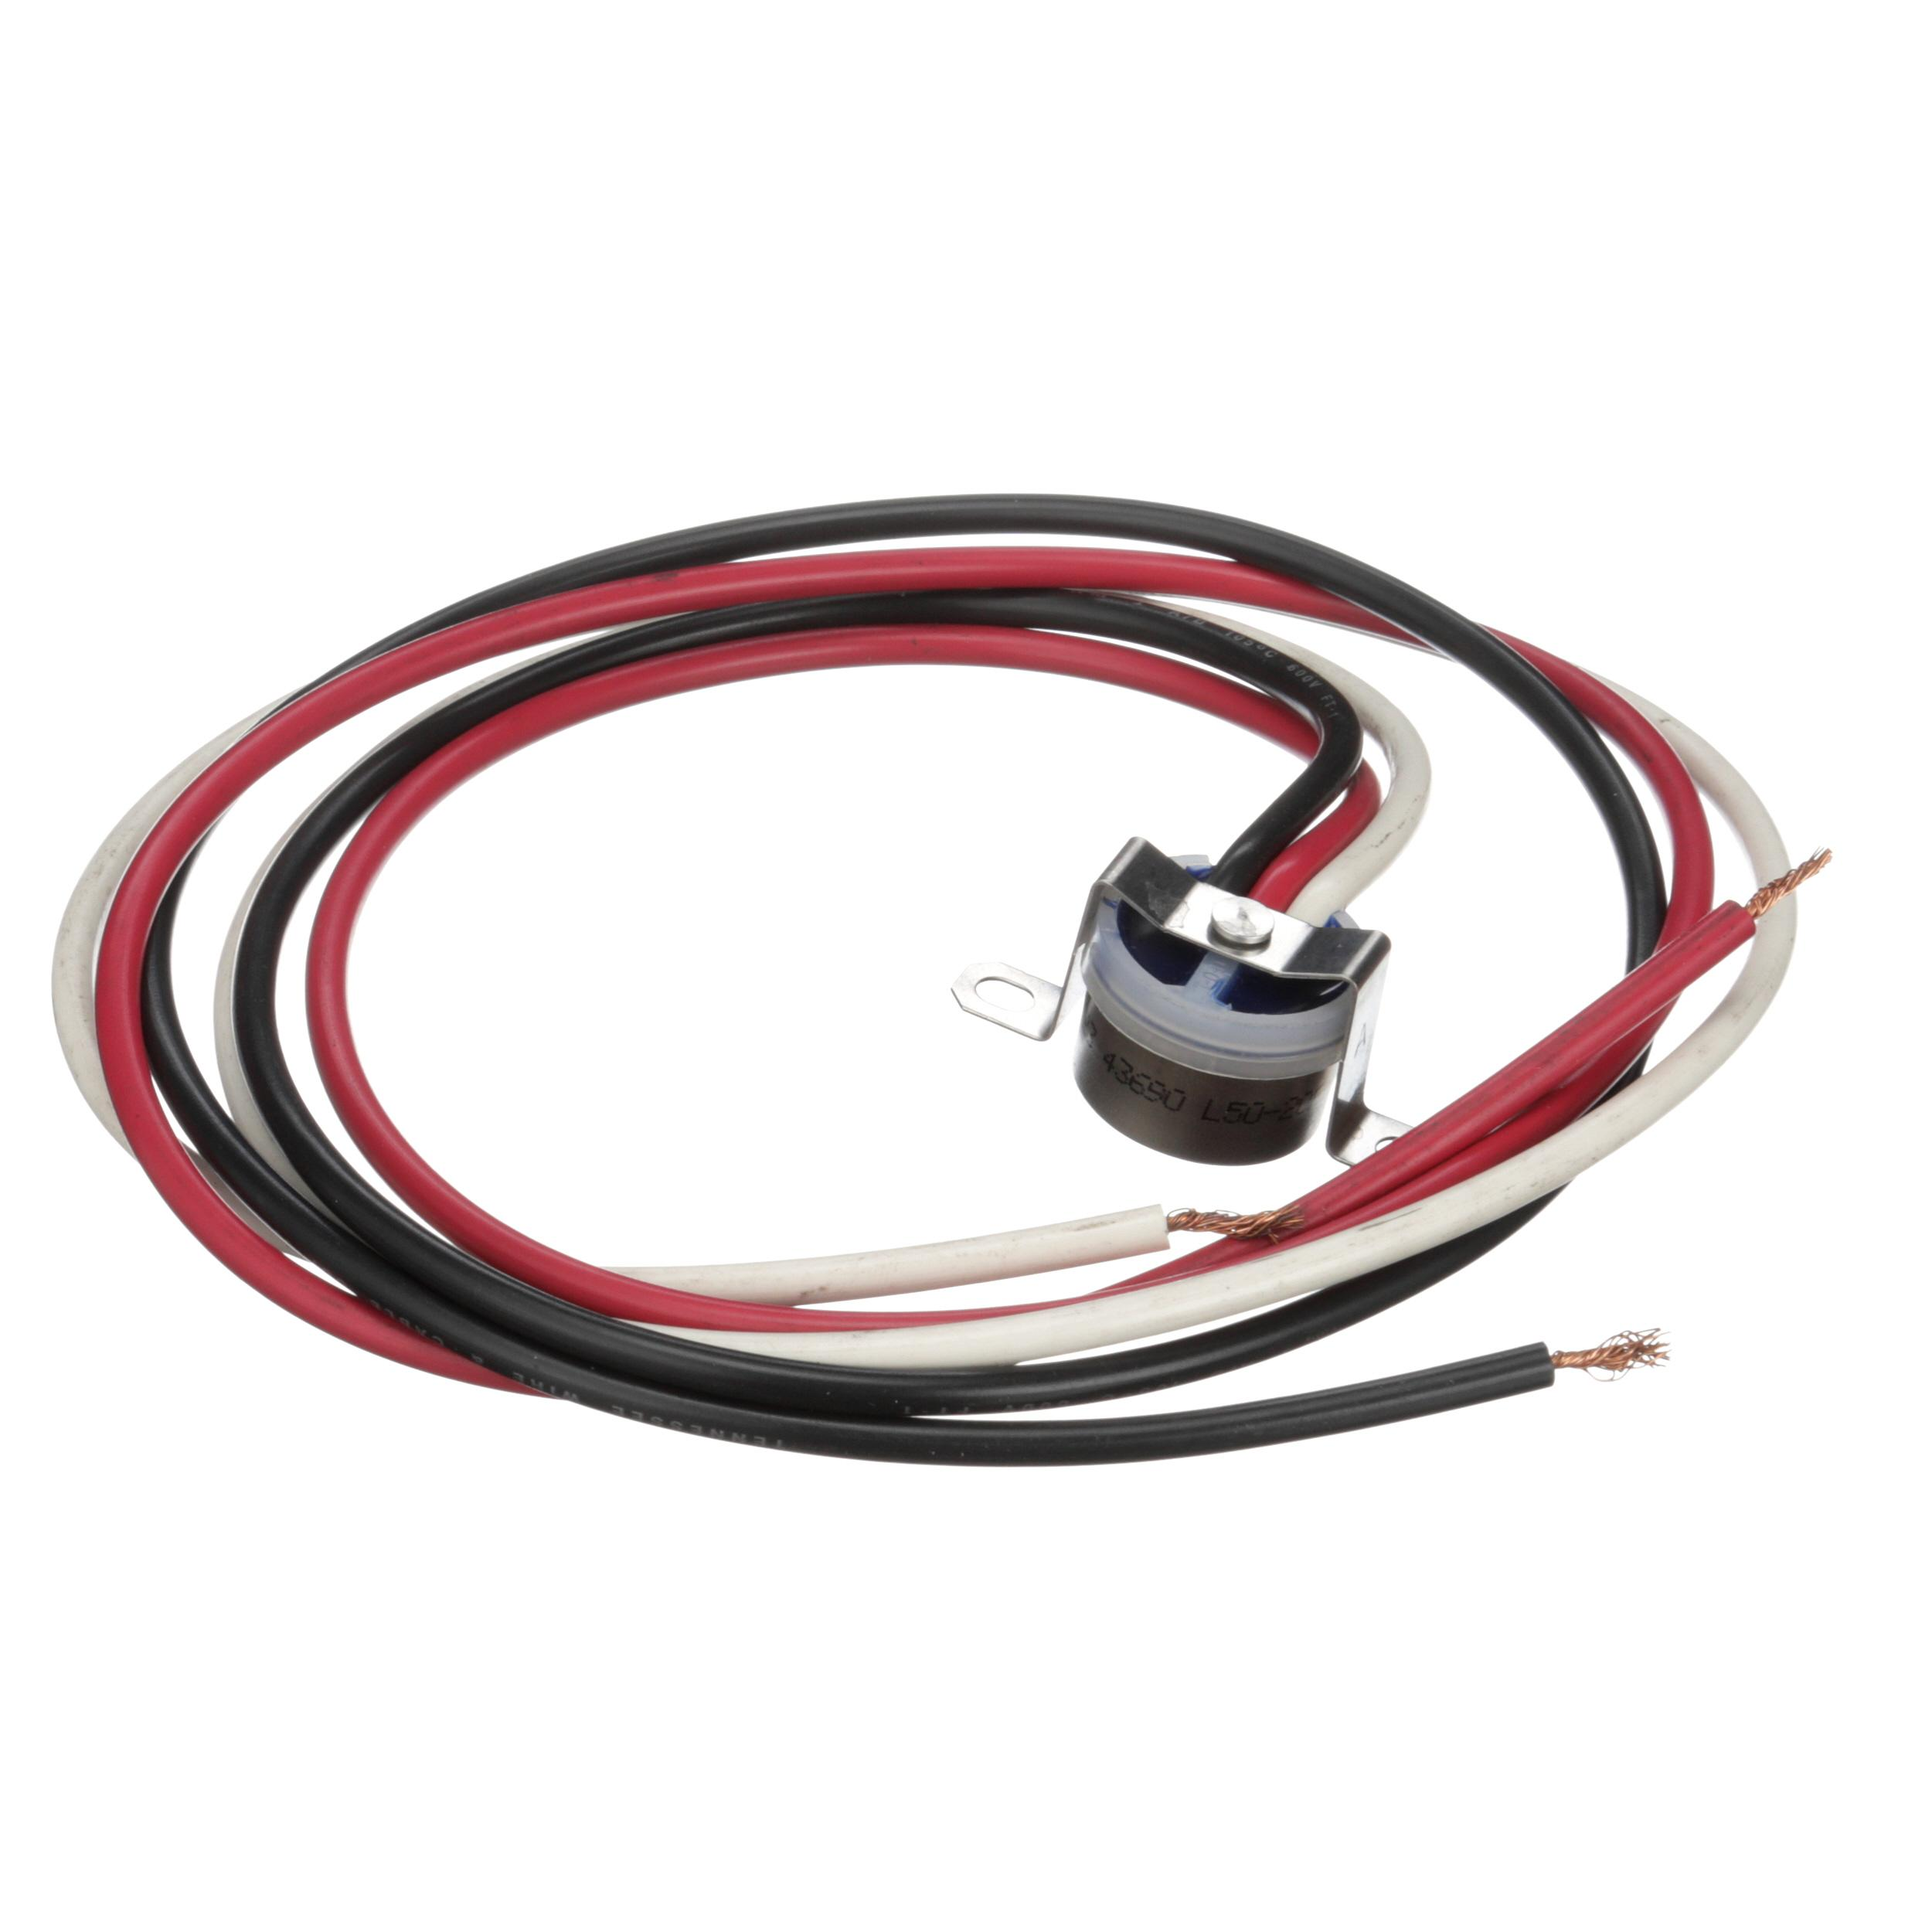 hight resolution of master bilt products fan delay term t stat nl 001781 3 wires red wiring black white n l